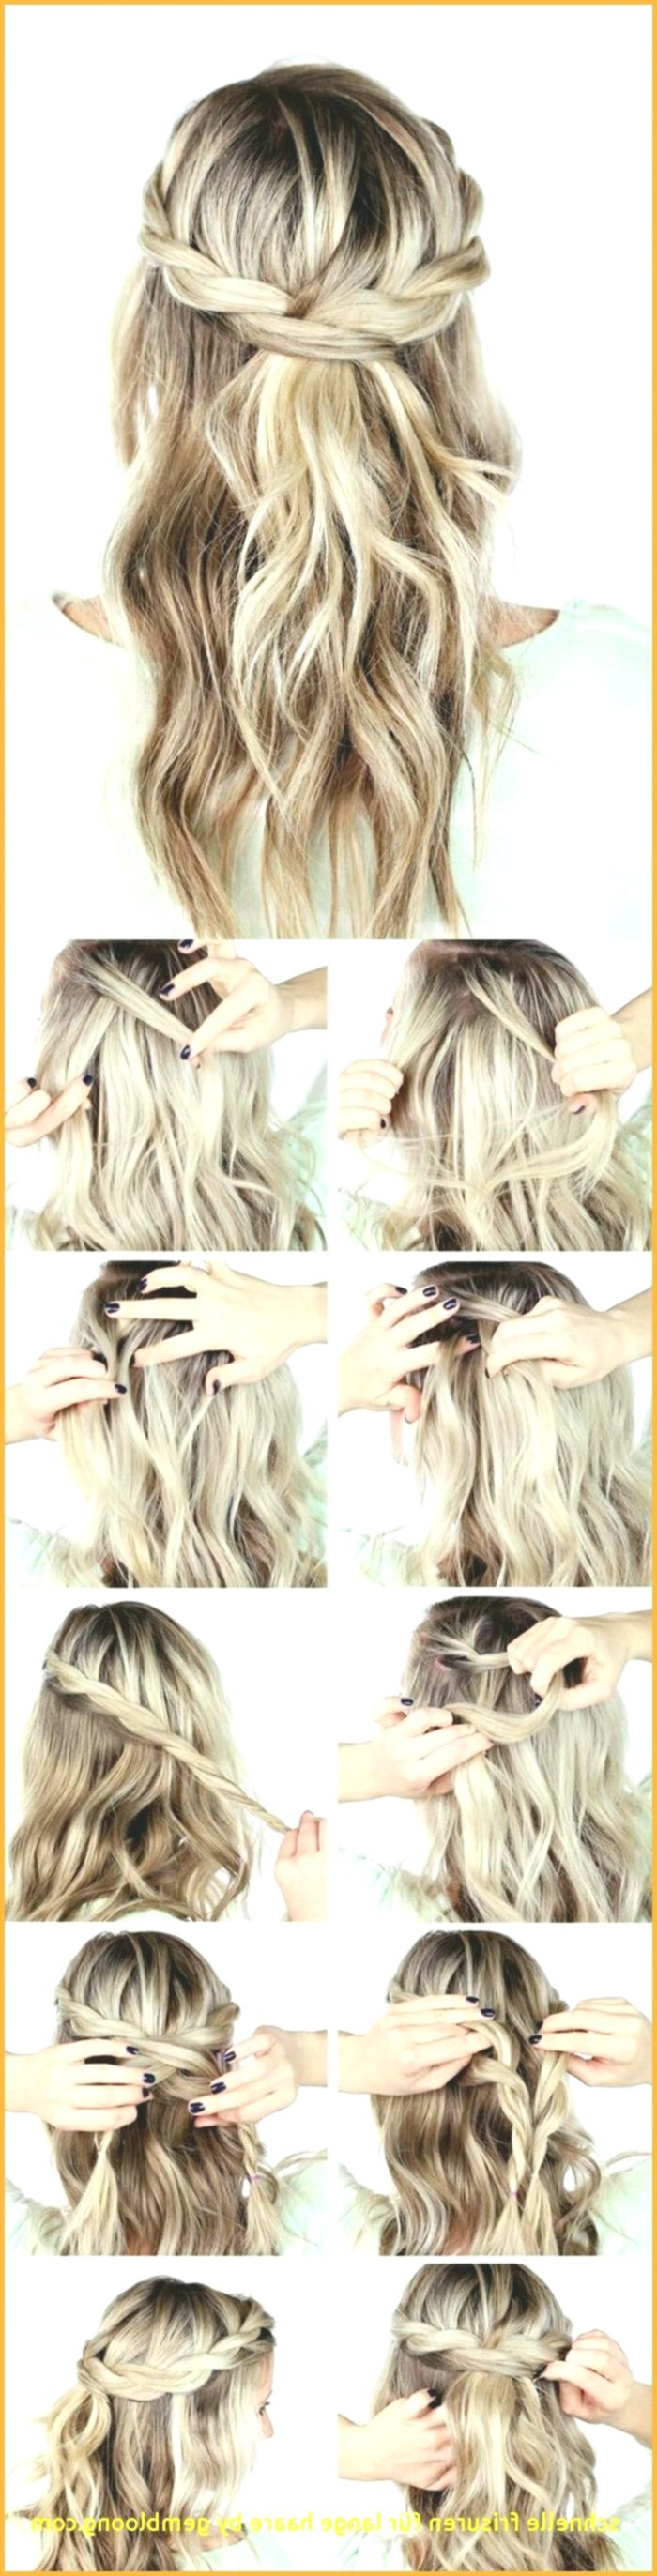 Lovely Fast Hairstyles For Short Hair Decoration-Fresh Fast Hairstyles For Short Hair Collection